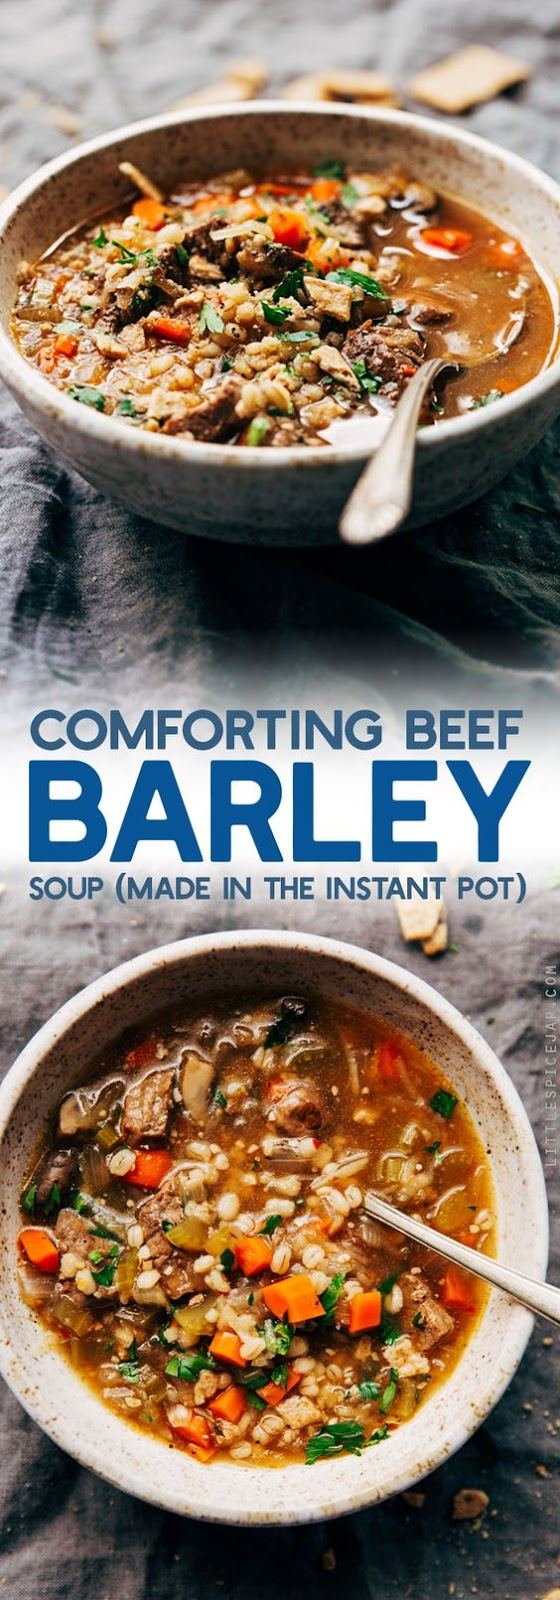 COMFORTING BEEF BARLEY SOUP (INSTANT POT) #SOUP #INSTANTPOT #LOWCARB #LUNCH